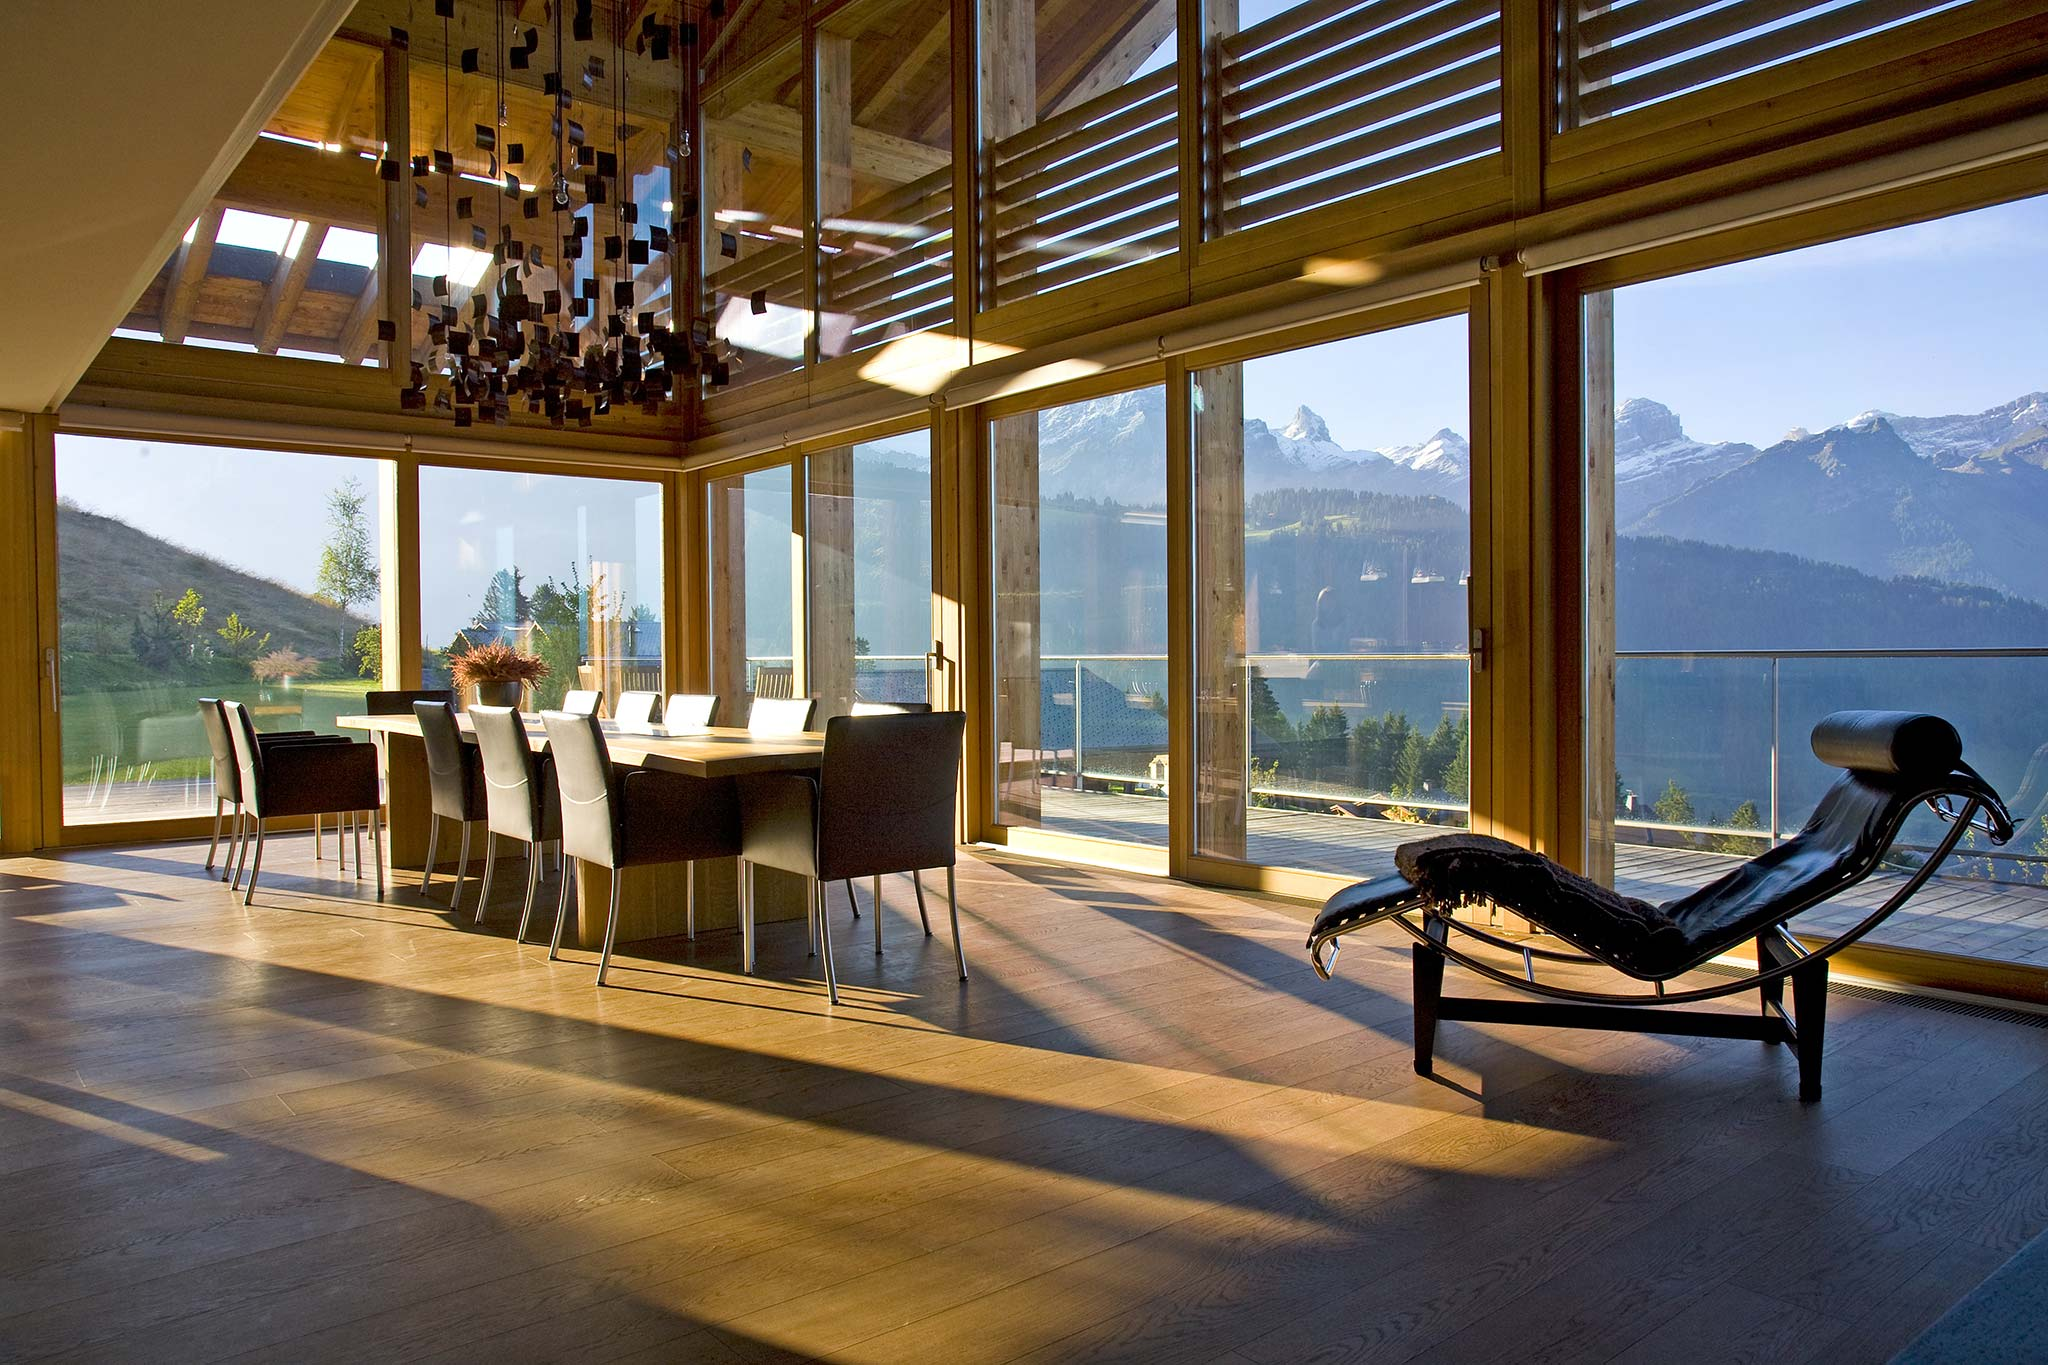 luxury-swiss-ski-chalet-solais-callender-howorth-04